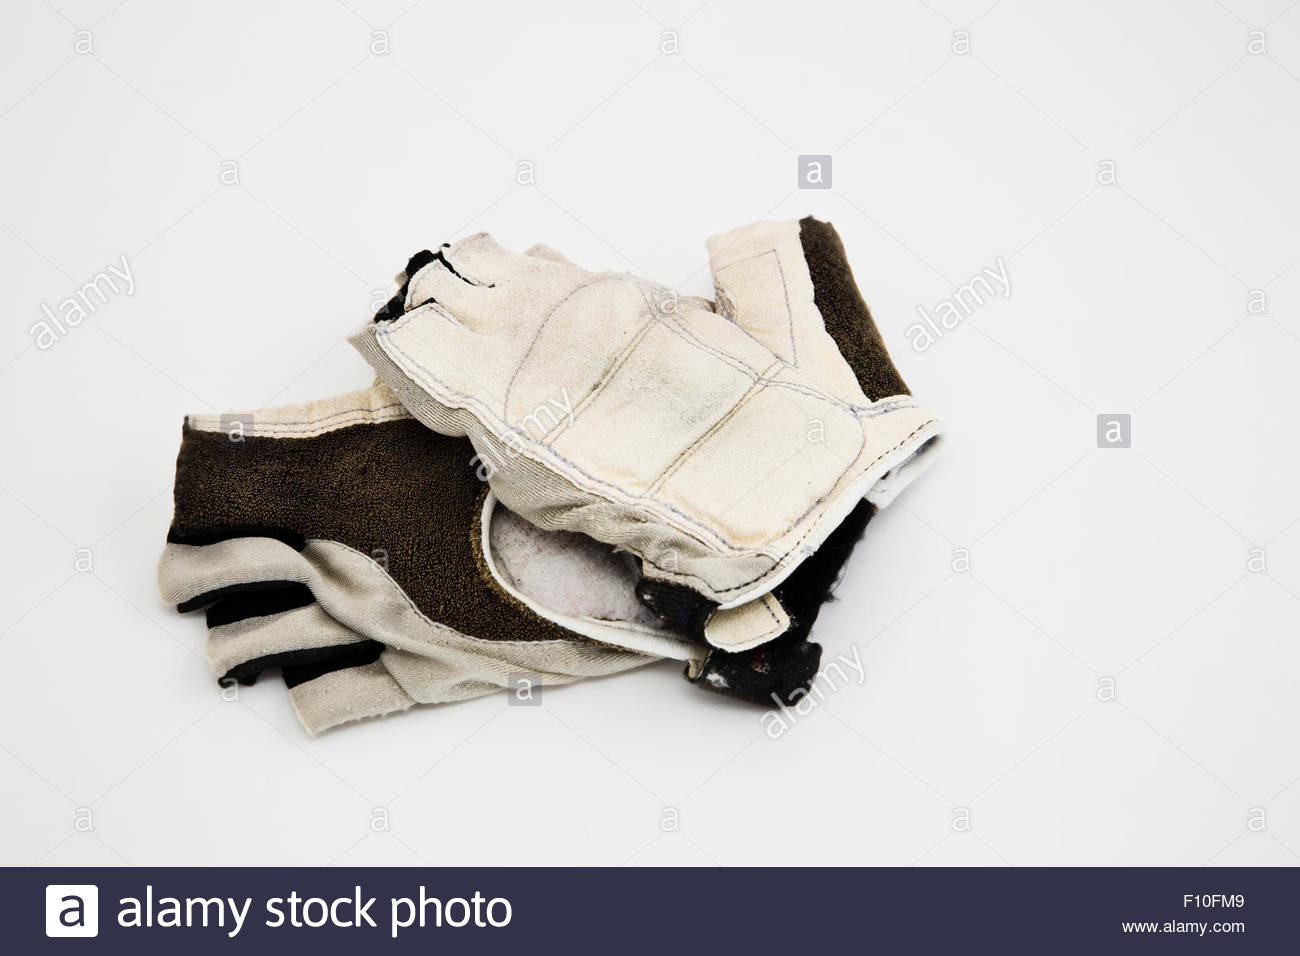 Worn out padded cycling gloves isolated on white with copy space - Stock Image